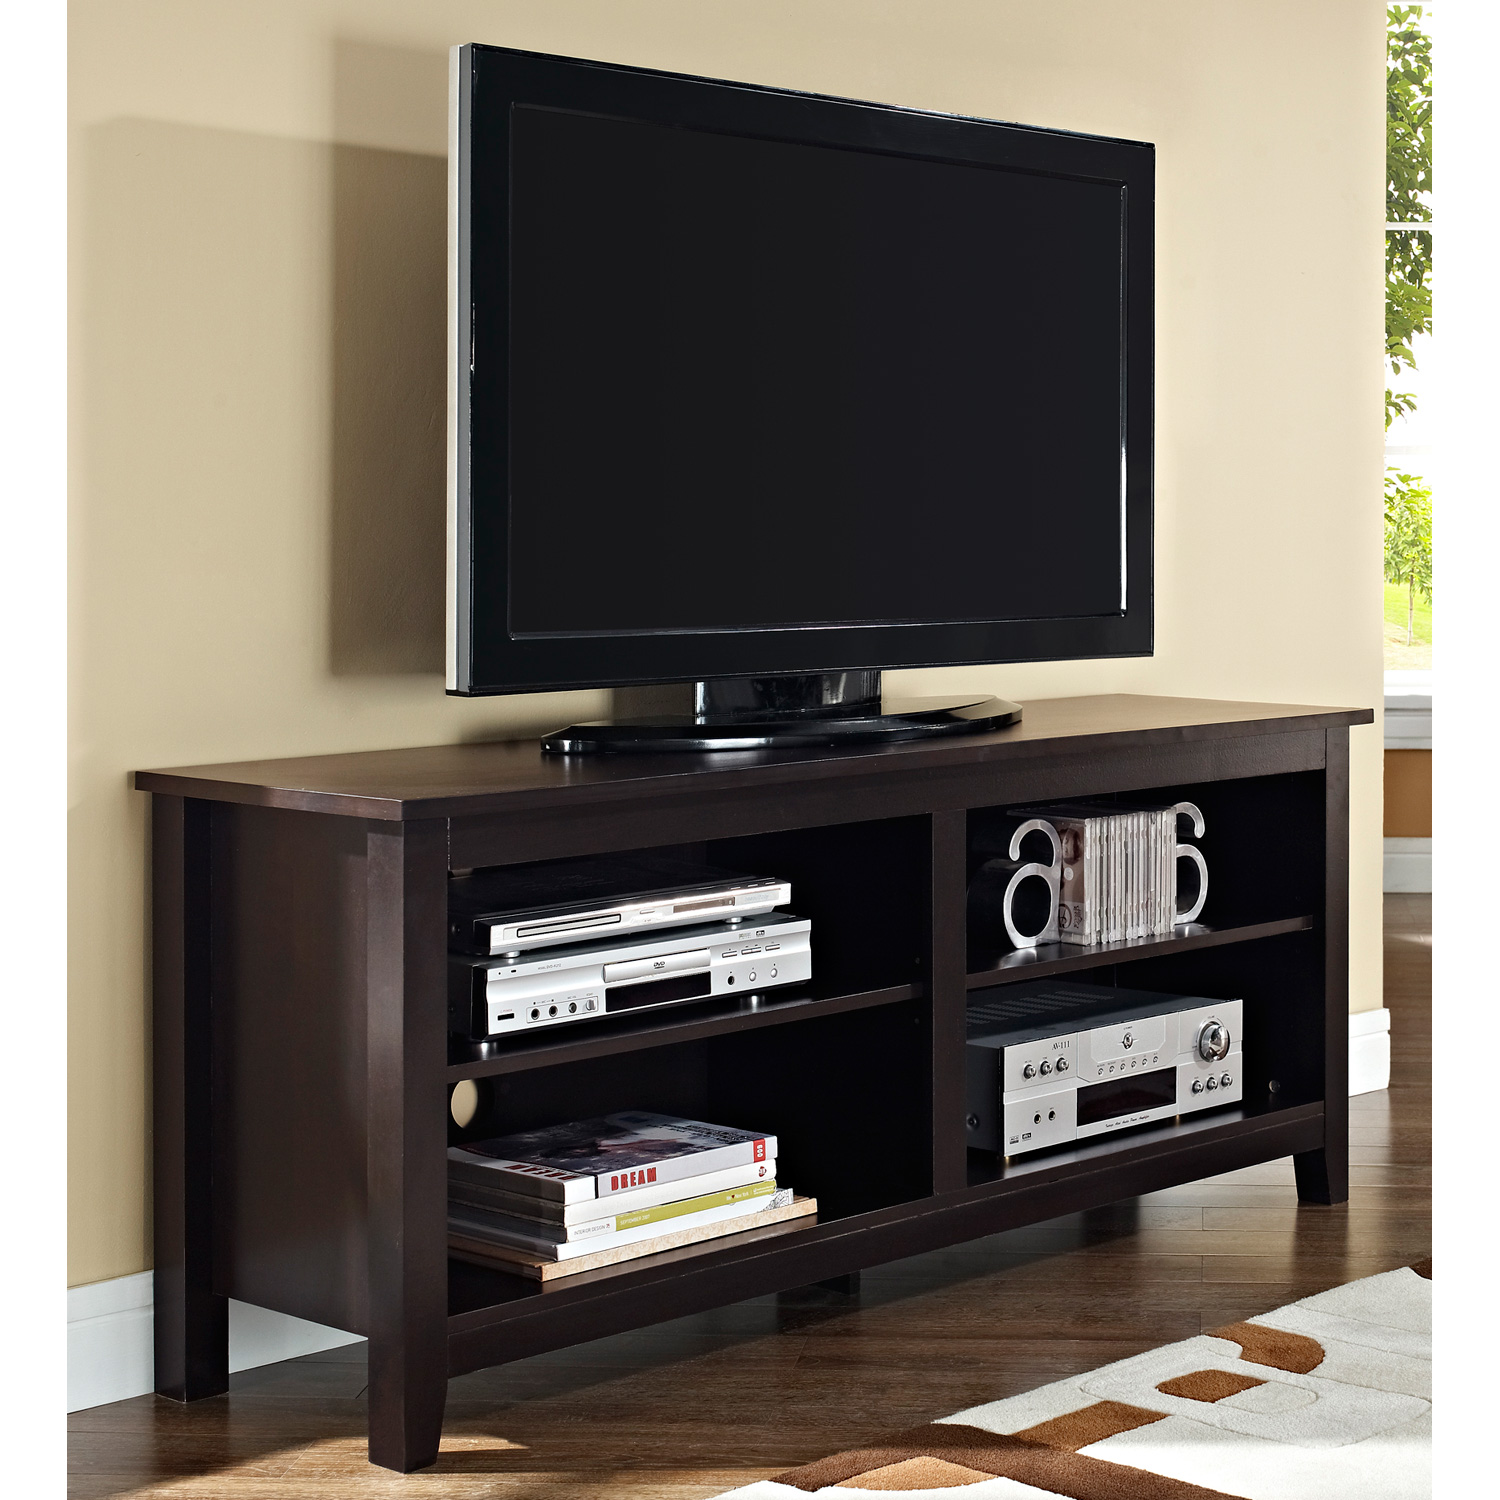 Contemporary 58 Inch Wood TV Console - Espresso - WAL-W58CSPES